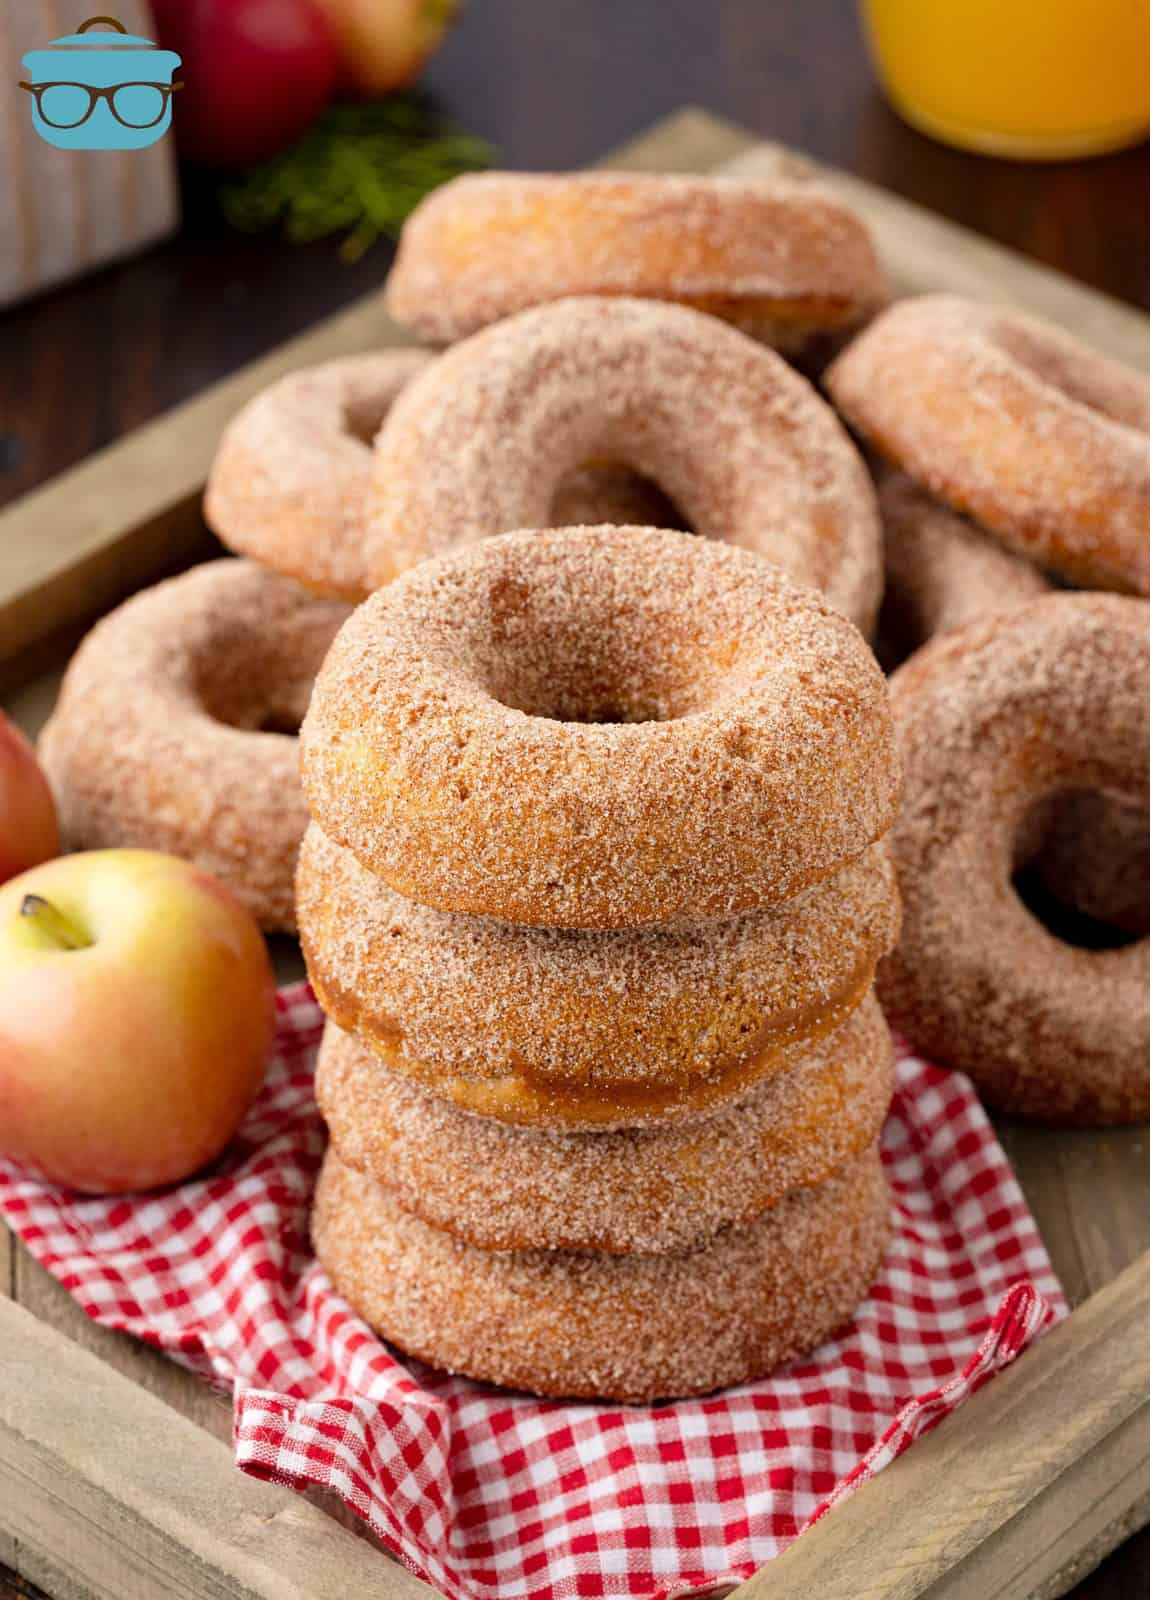 Four stacked Baked Apple Cider Donuts on tray with apple and more donuts behind it.